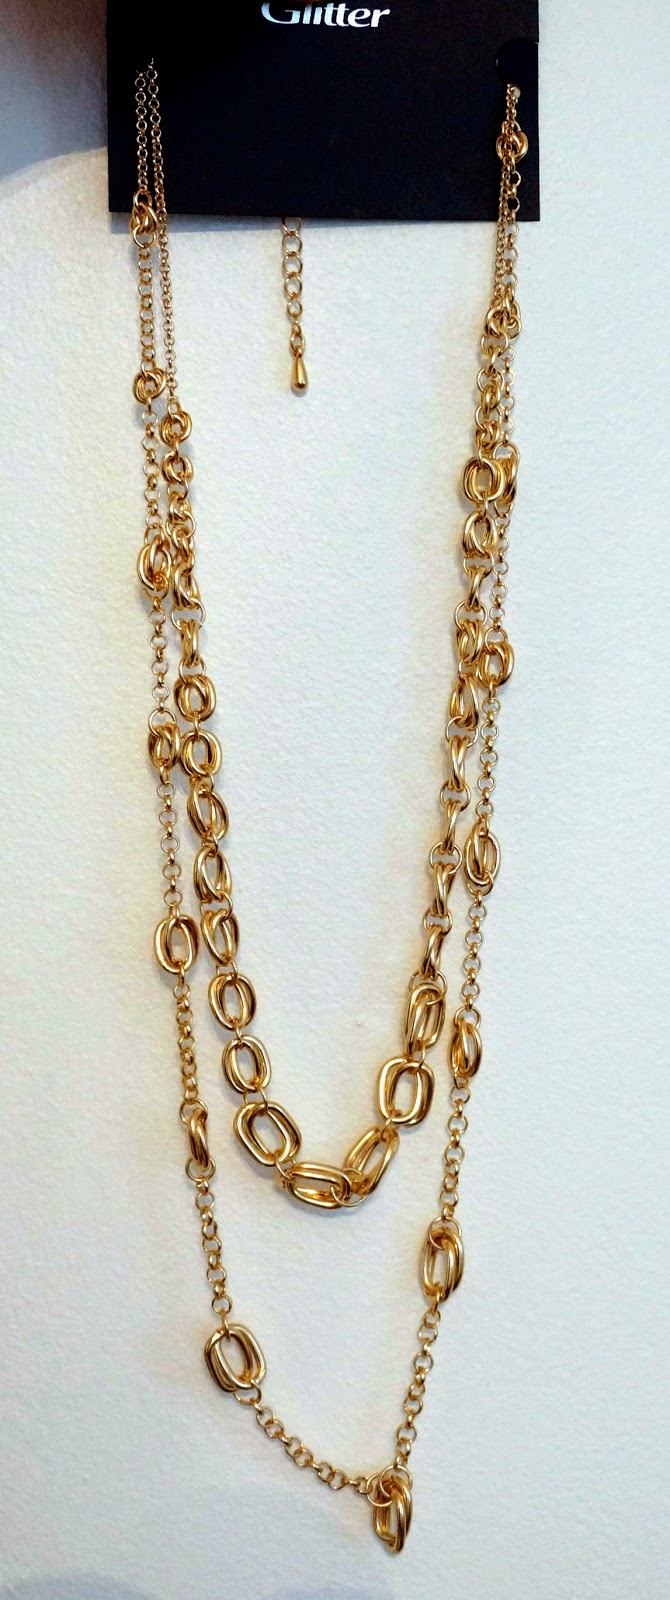 a picture of a long golden necklace